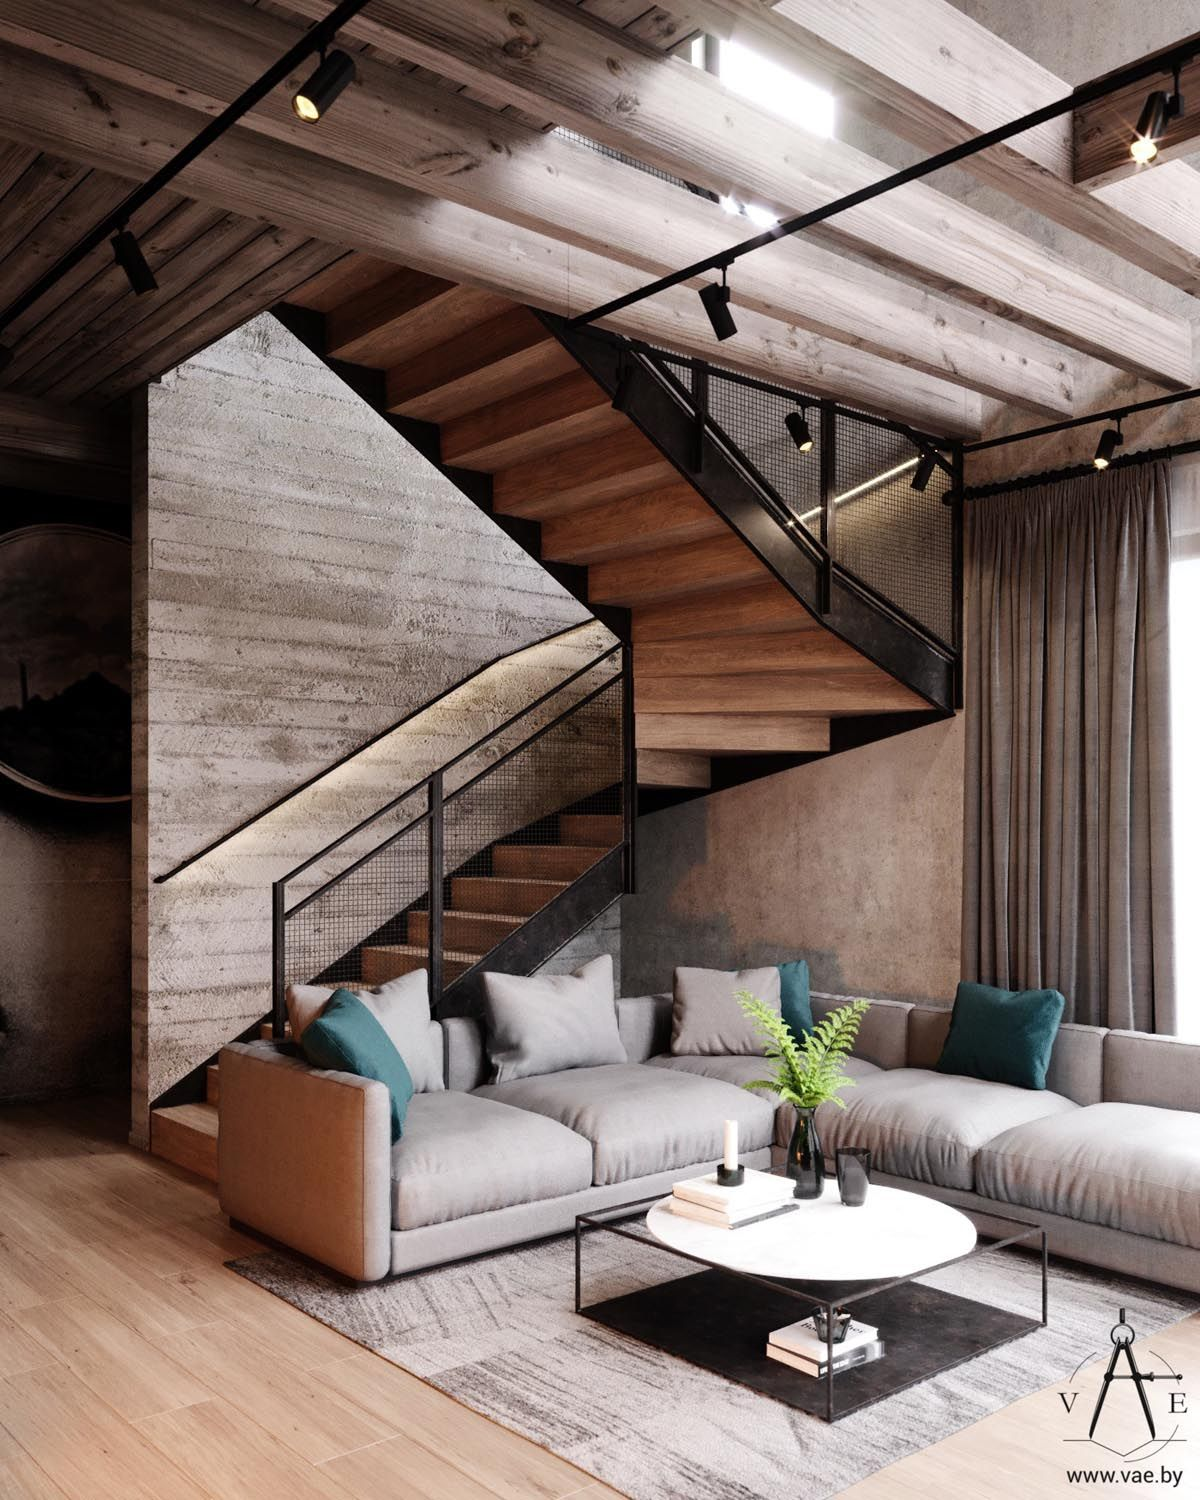 This City House In Minsk, Belarus, Is 151m2 Of Modern Loft Style. Designed  By VAE, The Interior Is Decked Out With Metal And Concrete Industrial  Features, ...